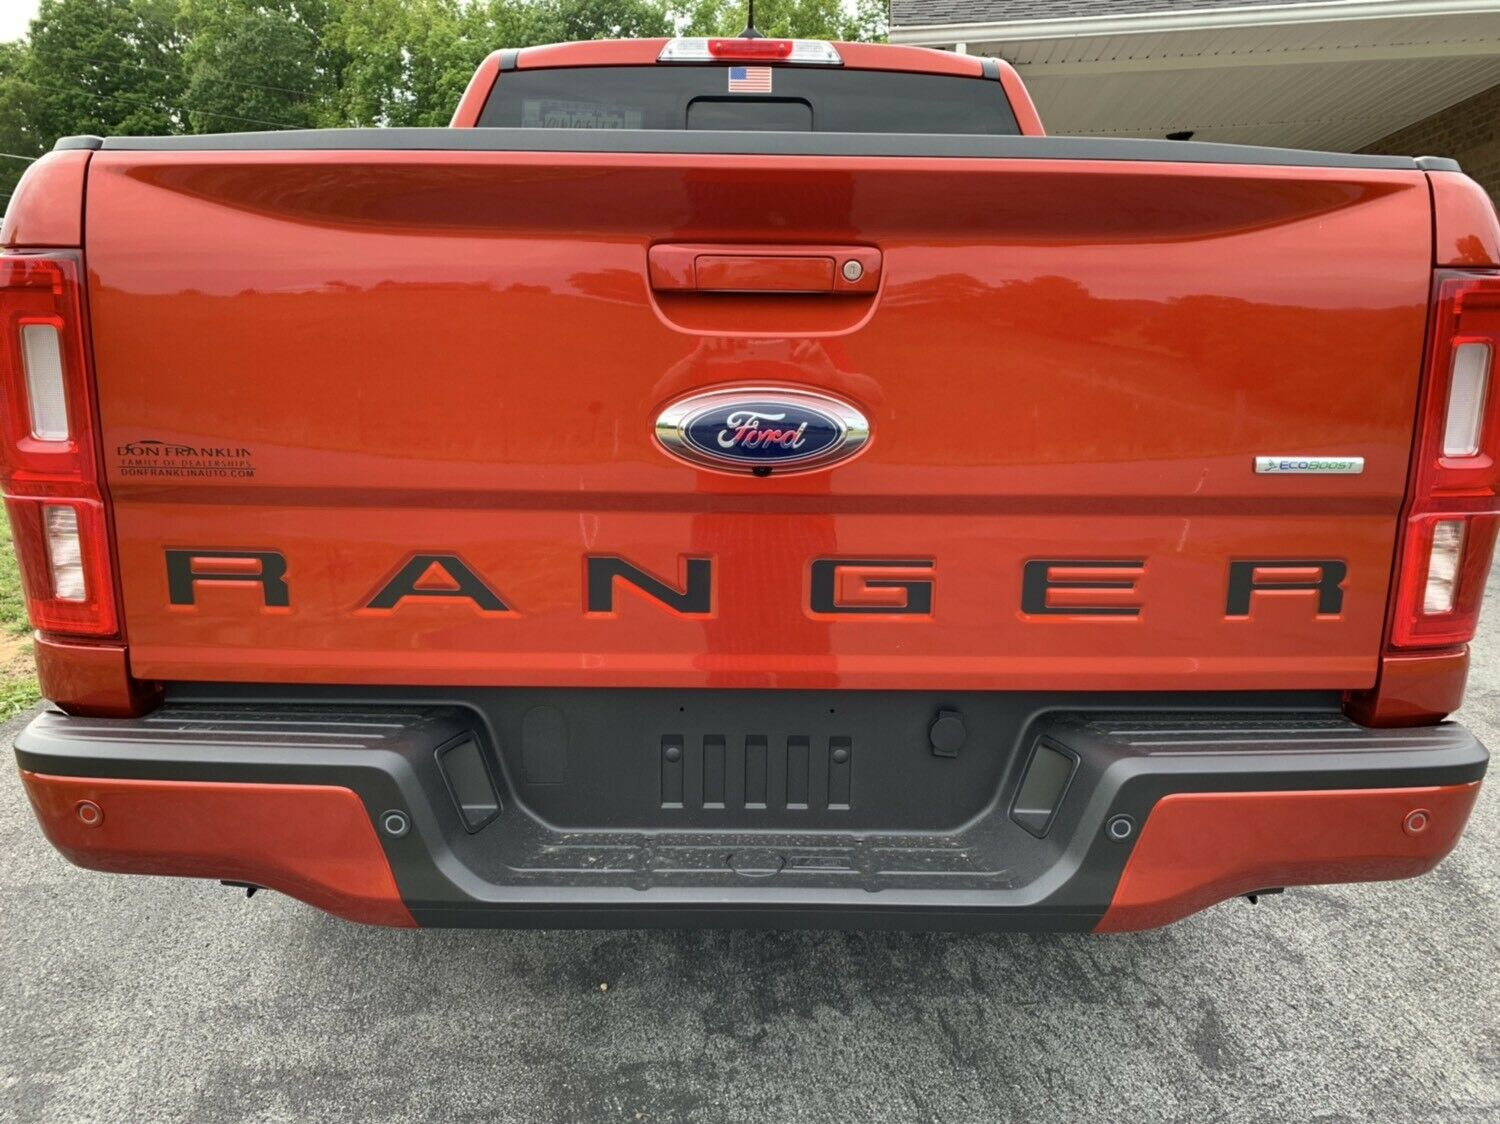 2019-2021 Ford Ranger Tailgate Letters ABS Plastic